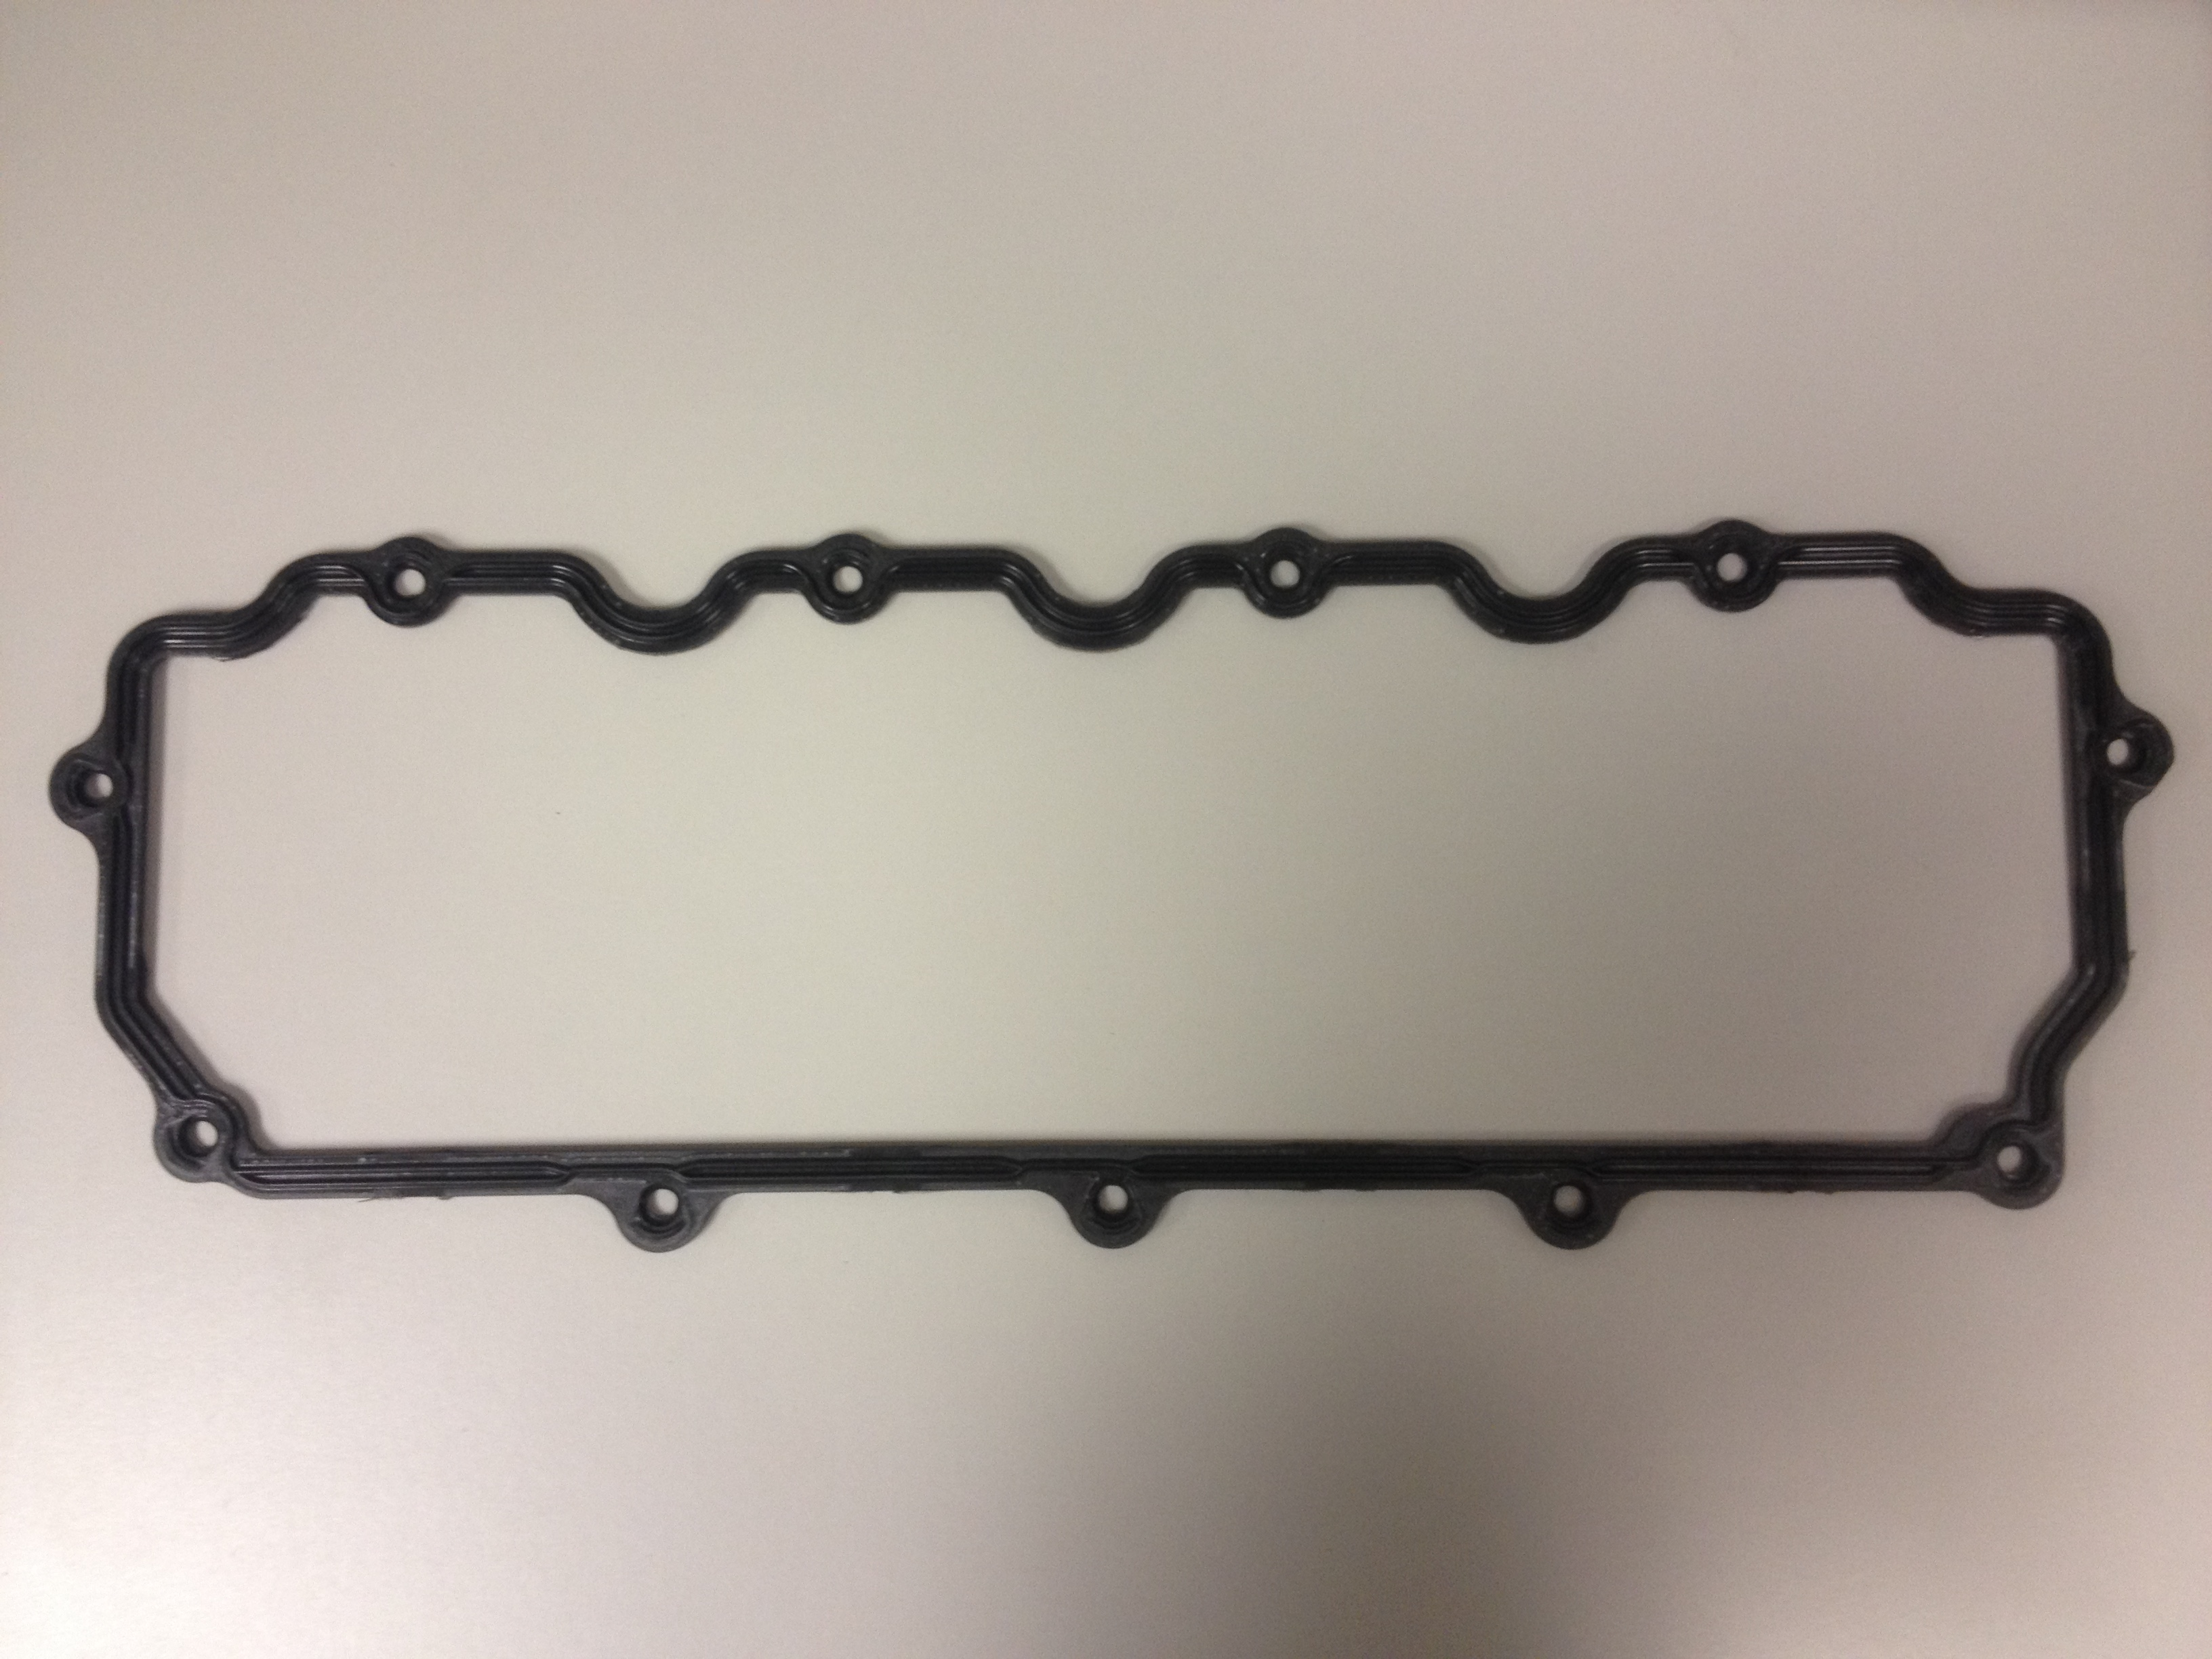 6 0 valve cover gasket autonation ford white bear lake parts accessories. Black Bedroom Furniture Sets. Home Design Ideas